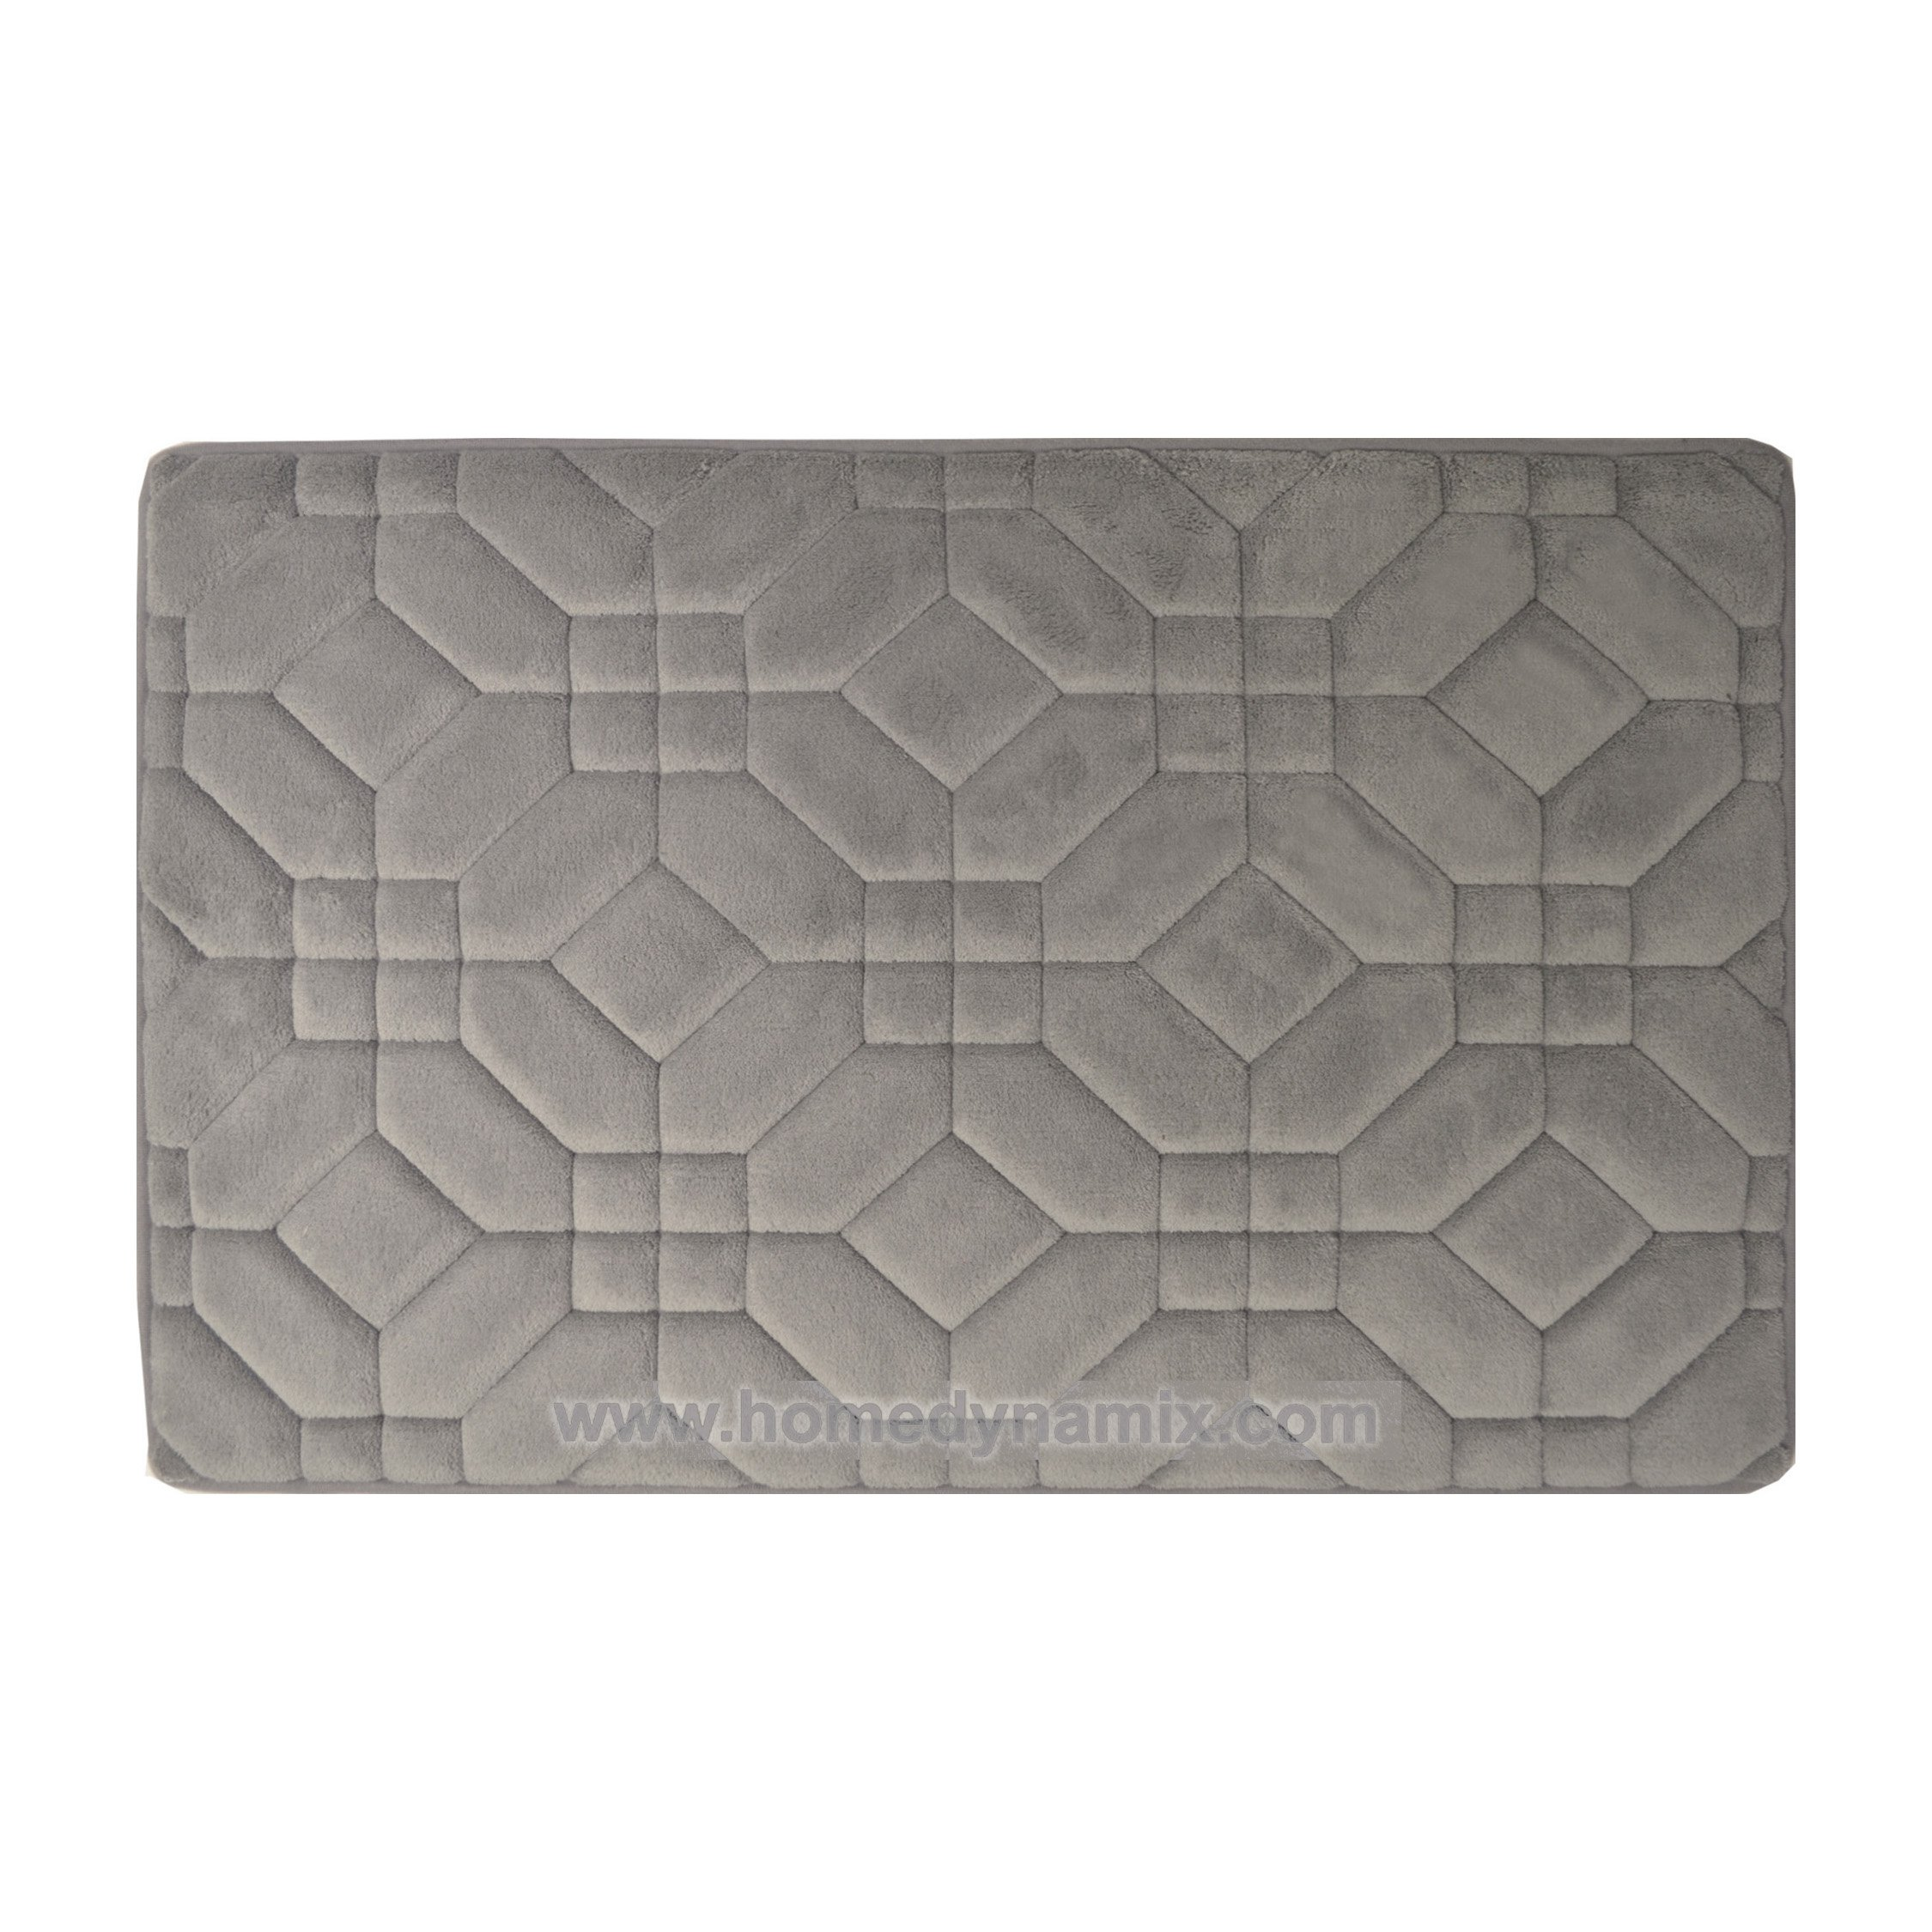 Gray Memory Foam Bathroom Mat/rug : Day Spa Tiles Design, Soft and Absorbent, Non-skid Backing (17'' x 24'' 2-Piece Set)